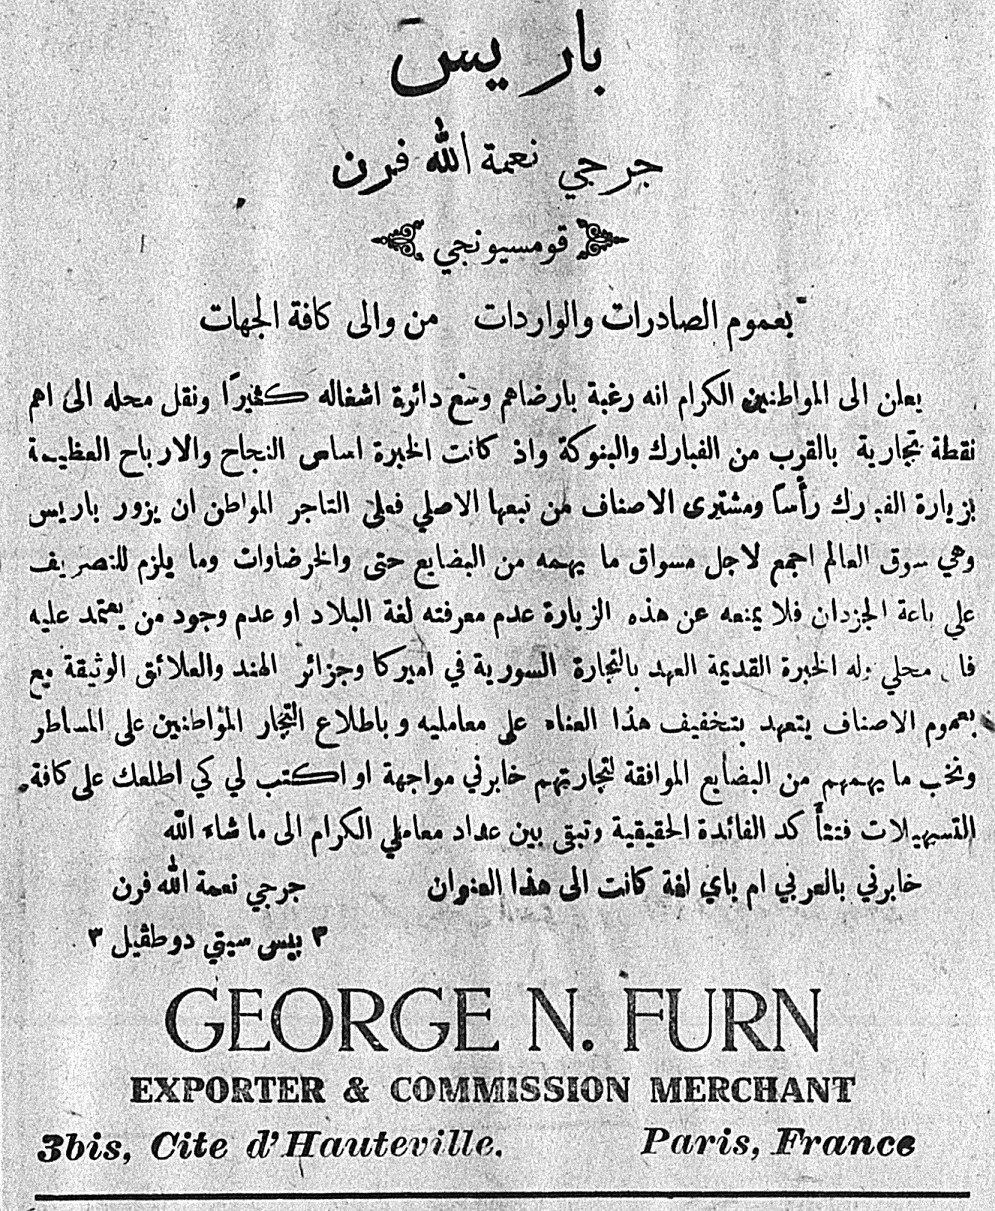 Mira'at Al-Gharb, February 27, 1912